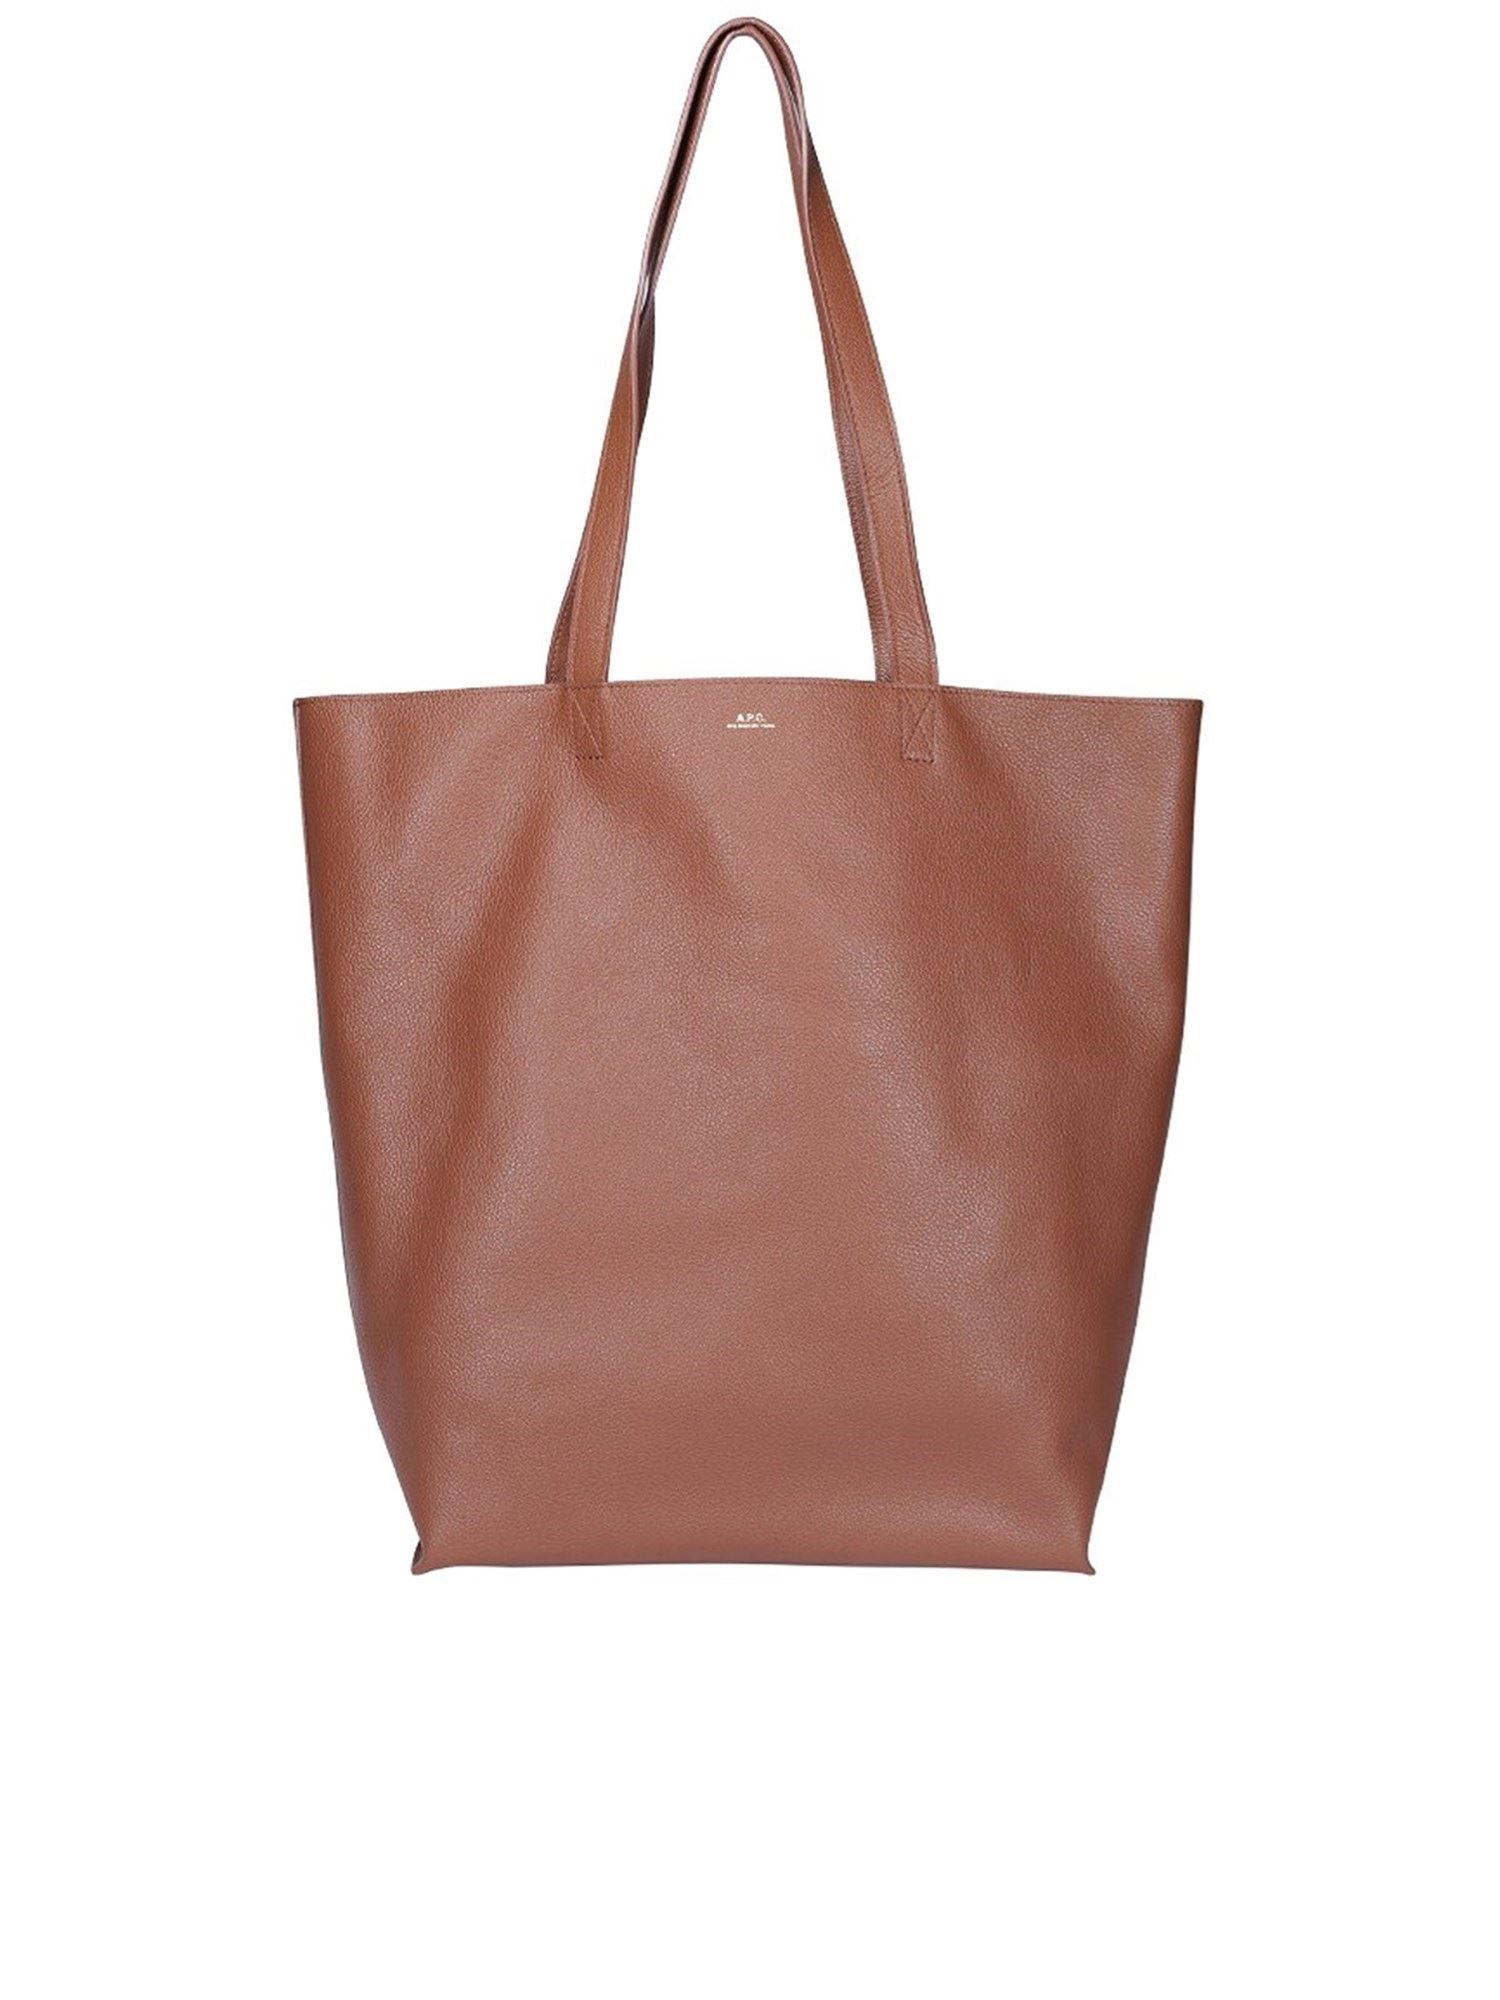 A.p.c. Leathers MAIKO TOTE IN BROWN